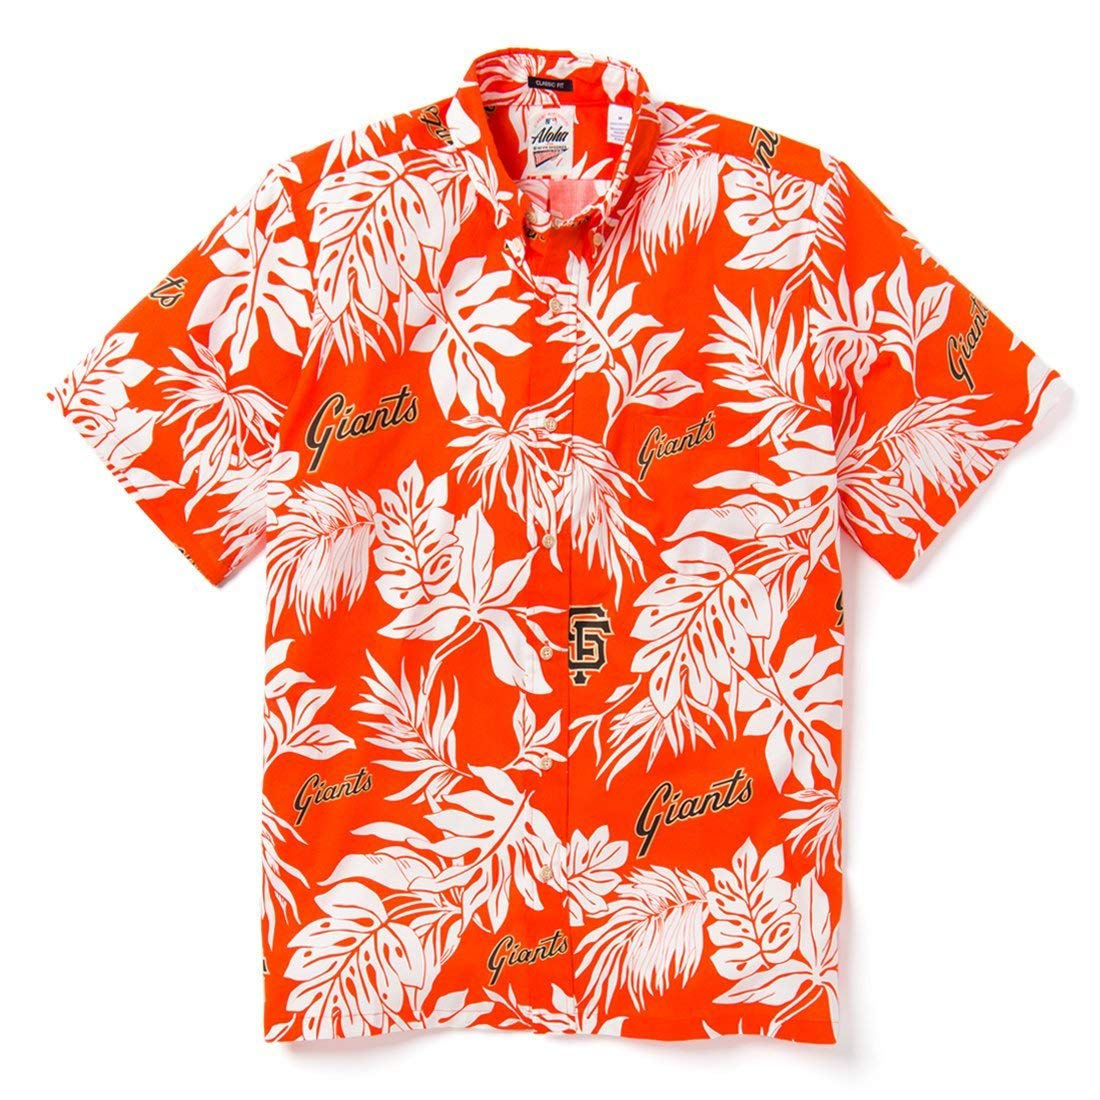 2810dbb3 Reyn Spooner Men's San Francisco Giants MLB Classic Fit Hawaiian Shirt at  Amazon Men's Clothing store: